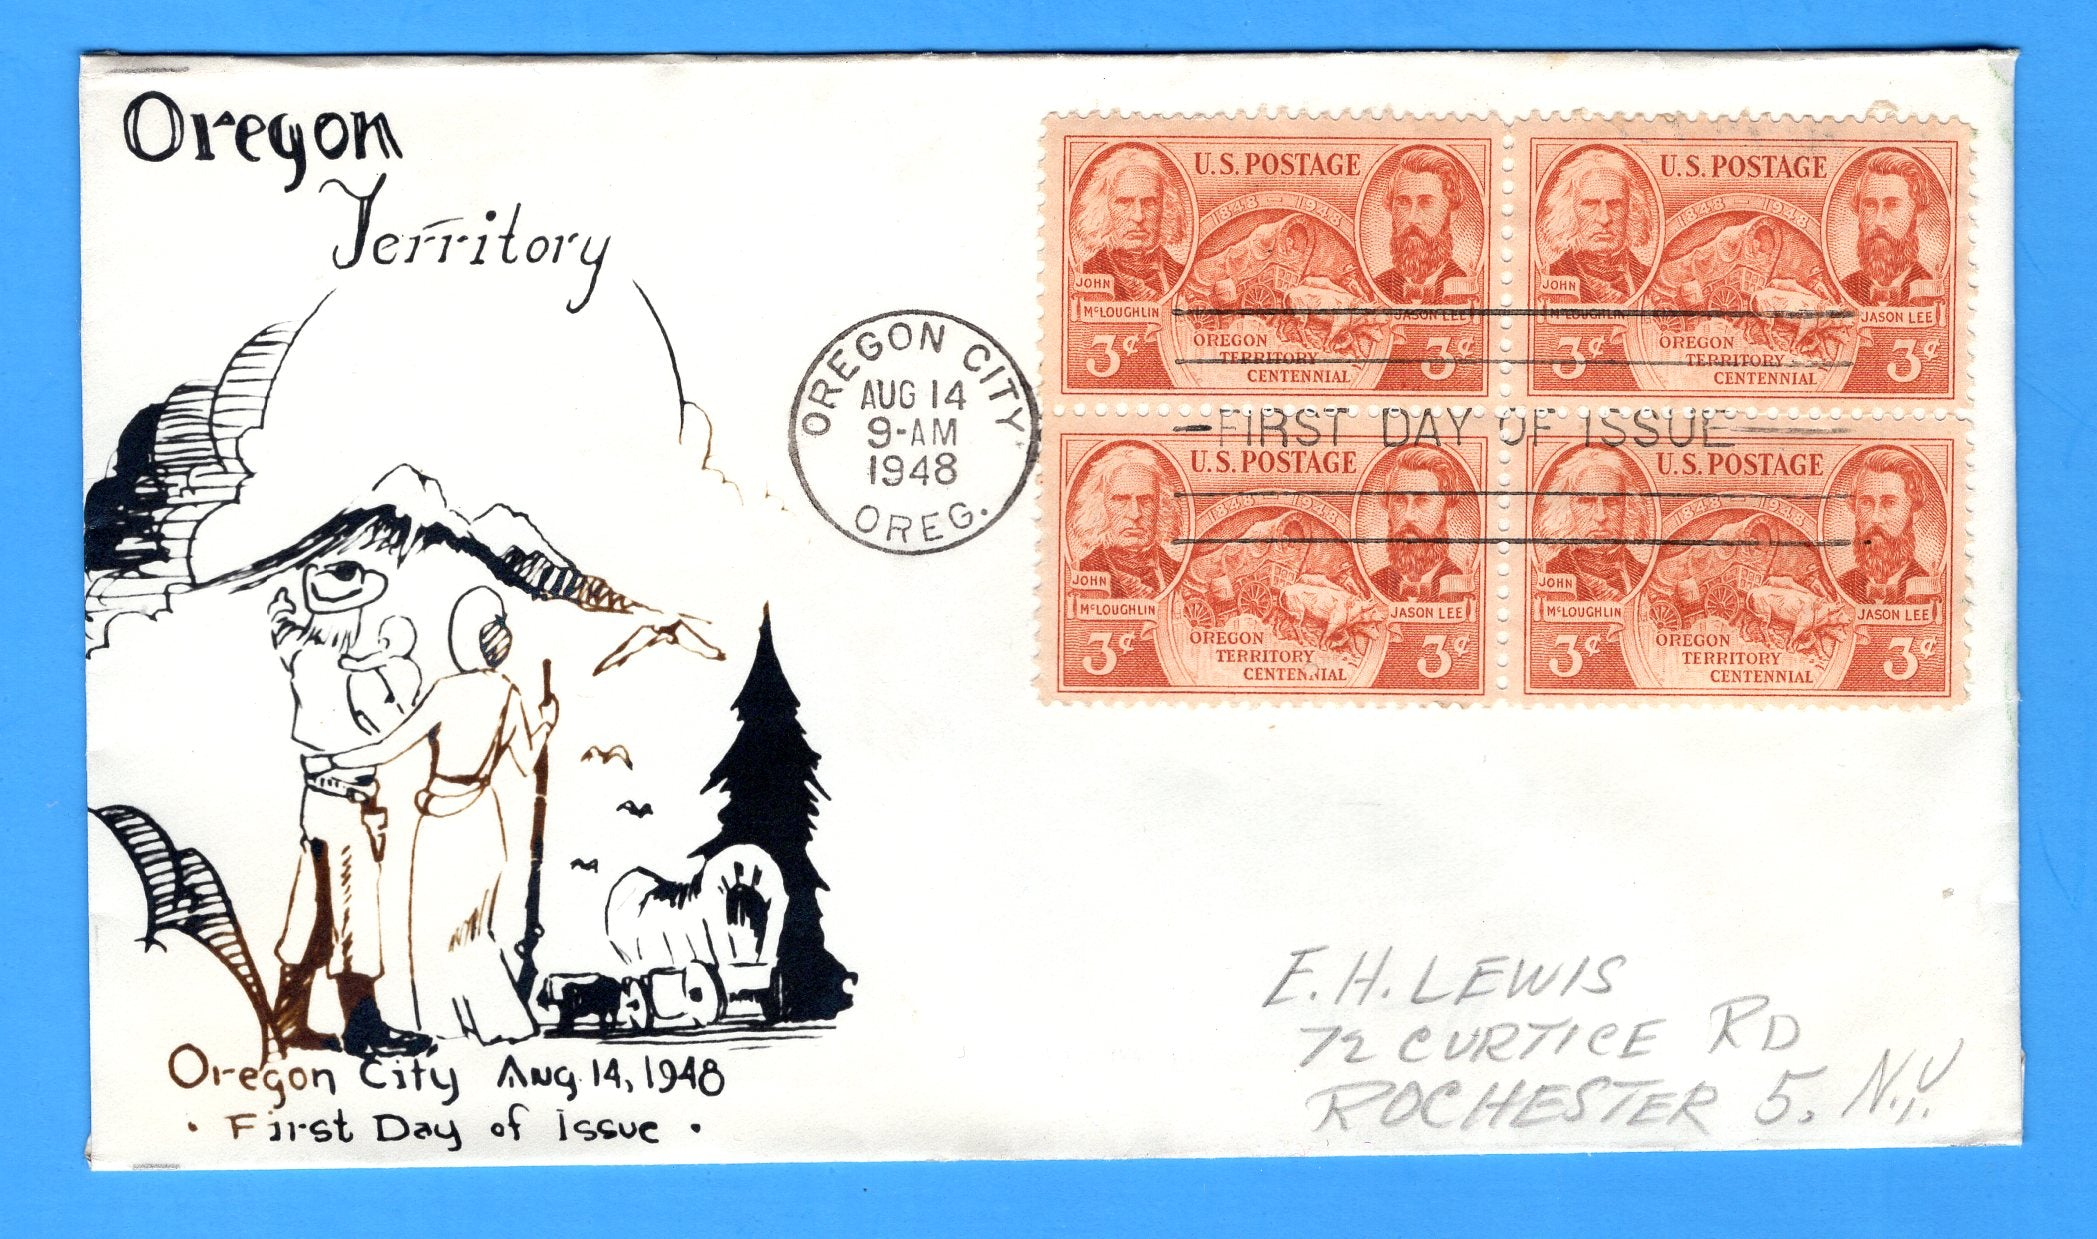 Scott 964 3c Oregon Territory Centennial Photo Cachet First Day Cover by Eric Lewis - Very Rare - Only Four Known Copies